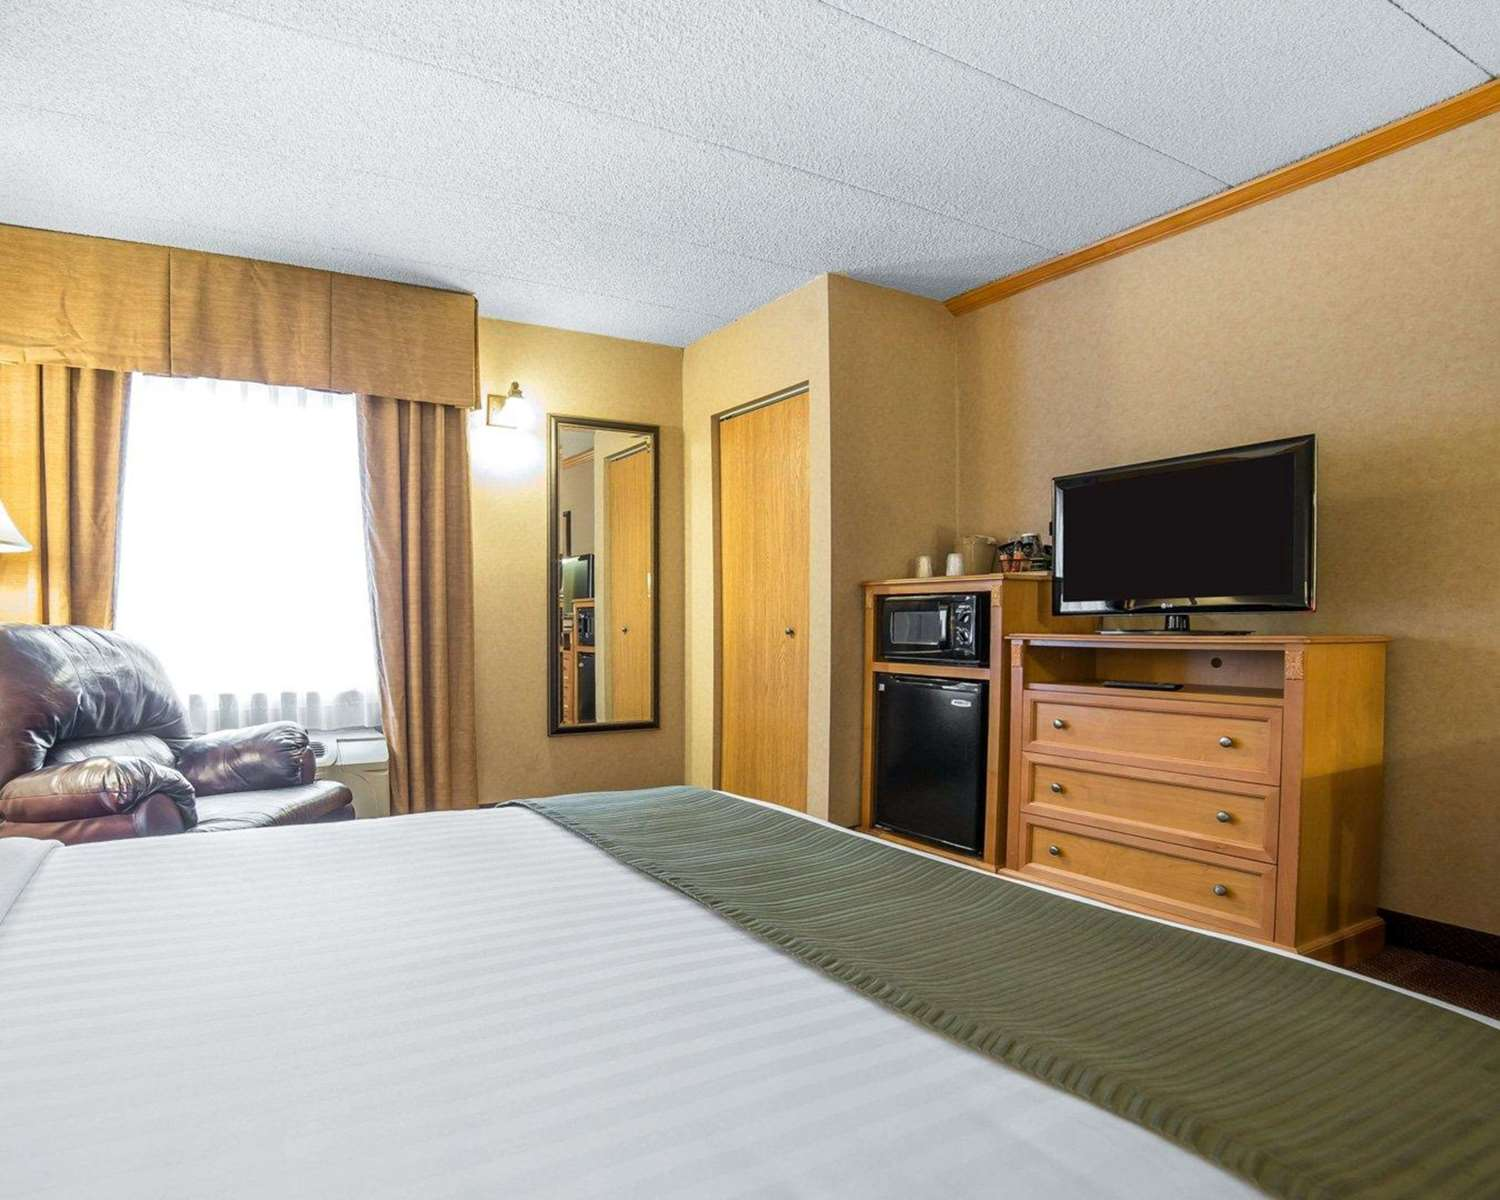 Quality Inn & Suites Casper, WY - See Discounts